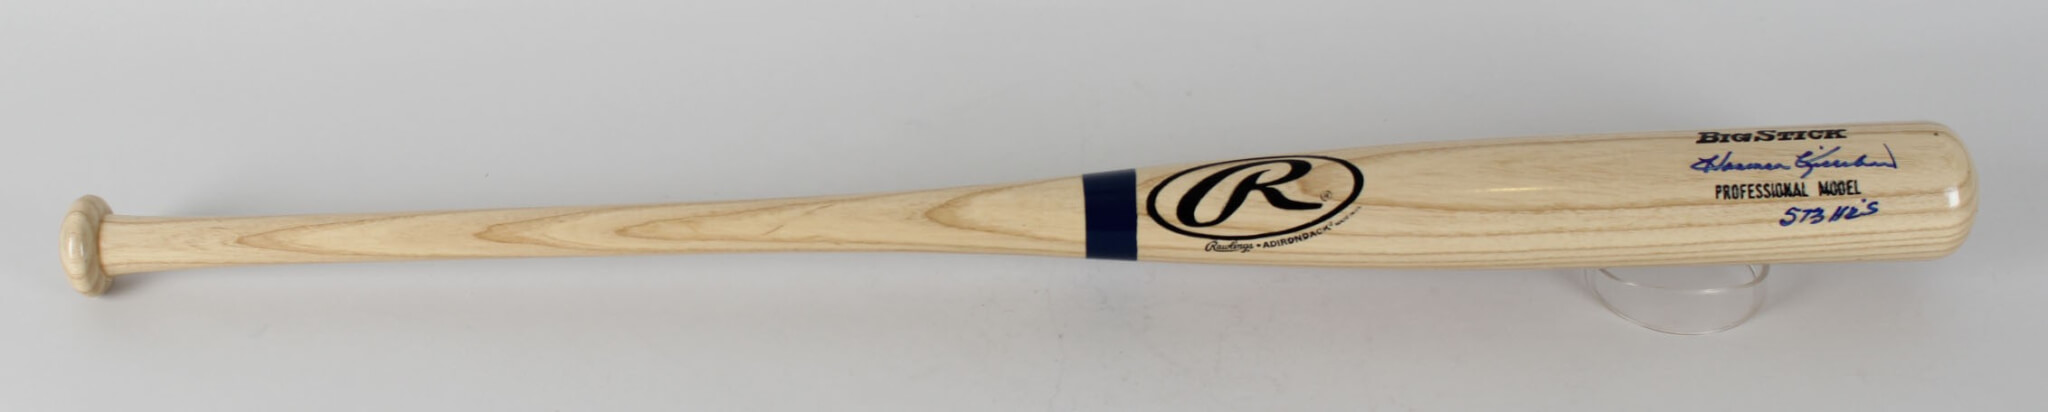 "Minnesota Twins – Harmon Killebrew Signed, Inscribed ""573 HR'S"" Bat (JSA LOA)46981_01"